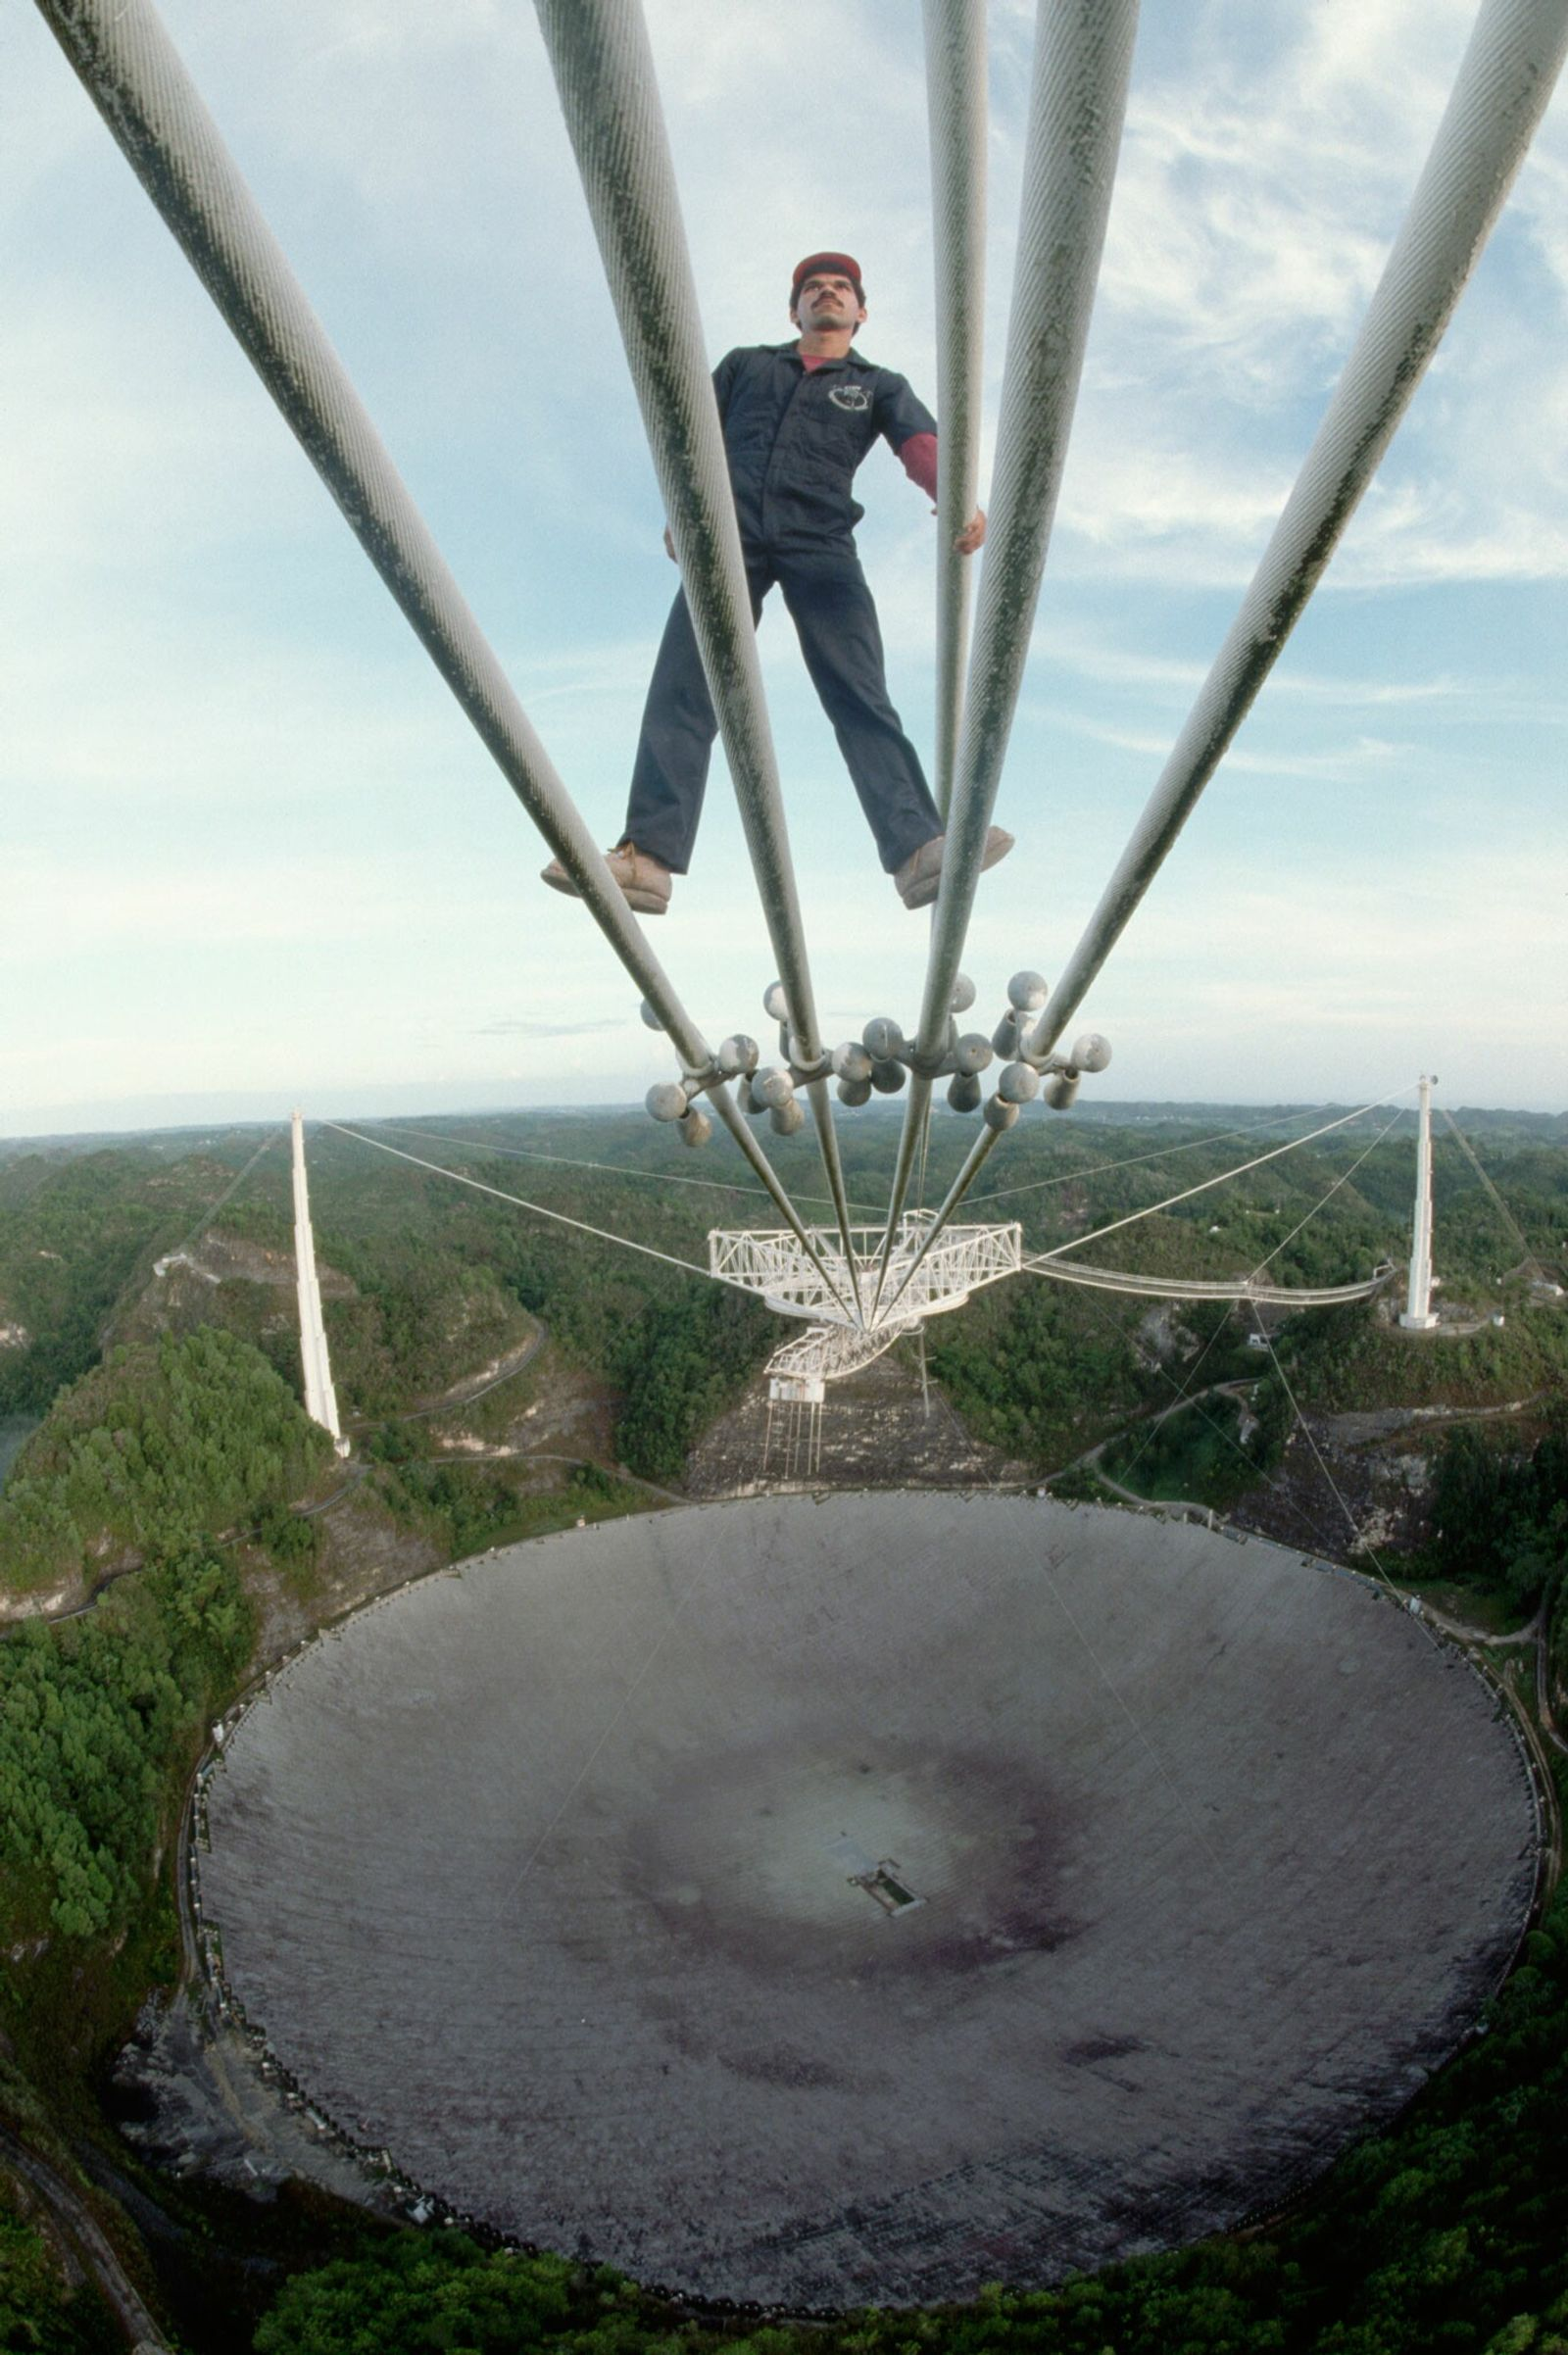 Technician Luis Heredia checks some the cables which suspend the receiver over the radio telescope dish ...